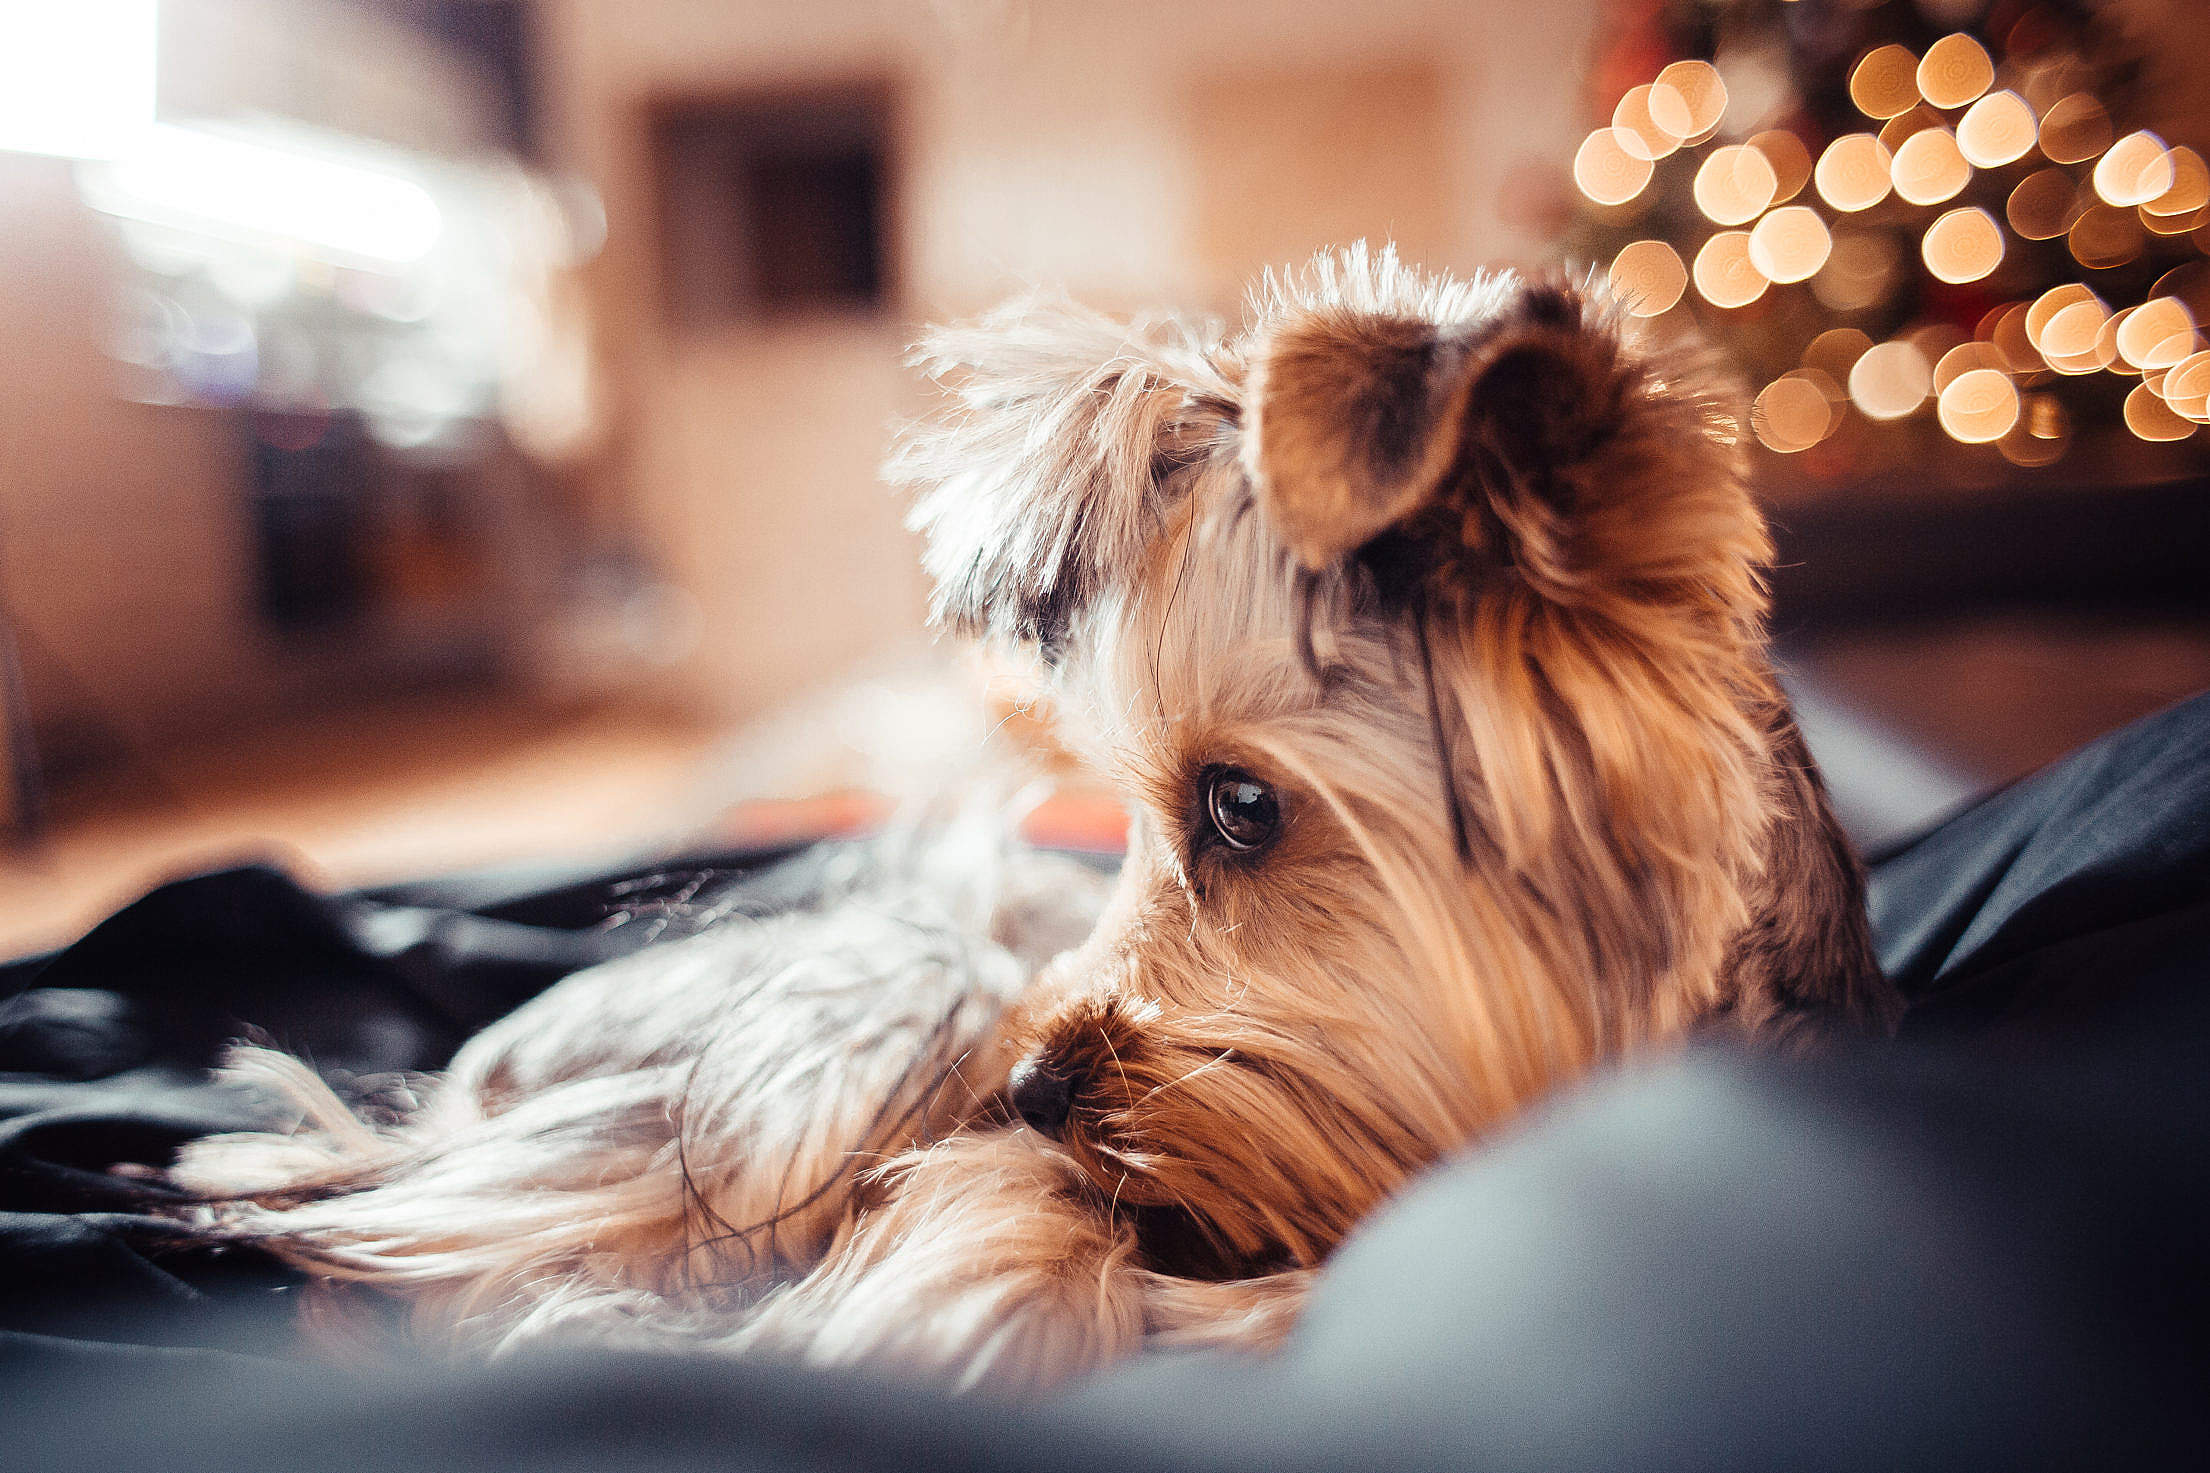 Cute Puppy on Christmas Free Stock Photo